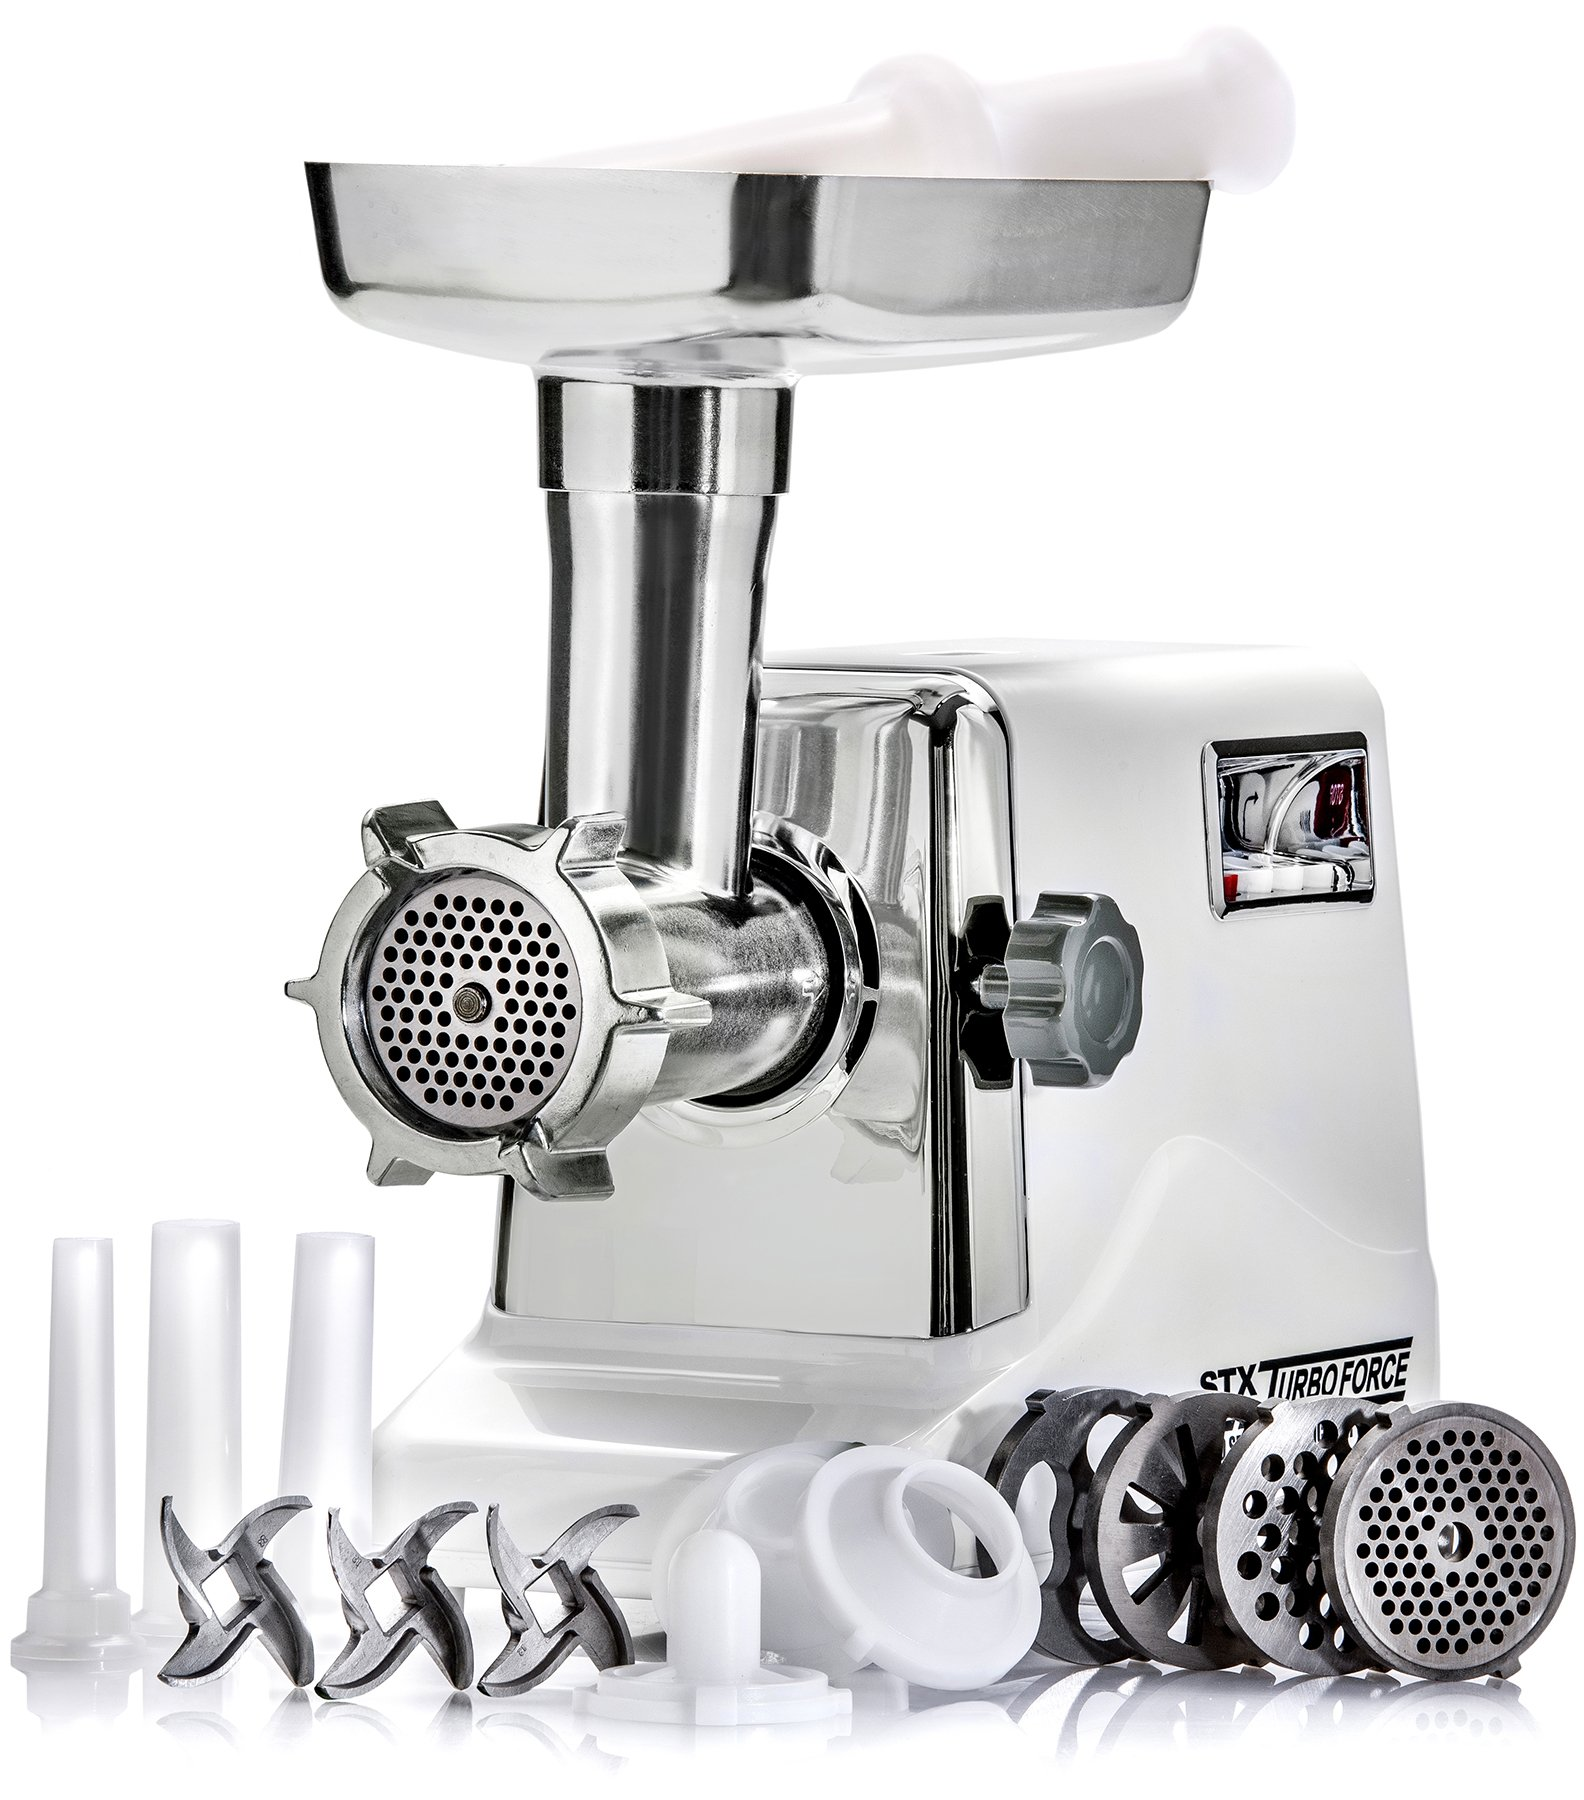 STX International Model STX-3000-TF Turboforce Electric Meat Grinder & Sausage Stuffer Kit - Size #12 - 3 Grinding Plates, 3 Blades, 3 Sausage Stuffing Tubes & Kubbe Attachment by STX INTERNATIONAL